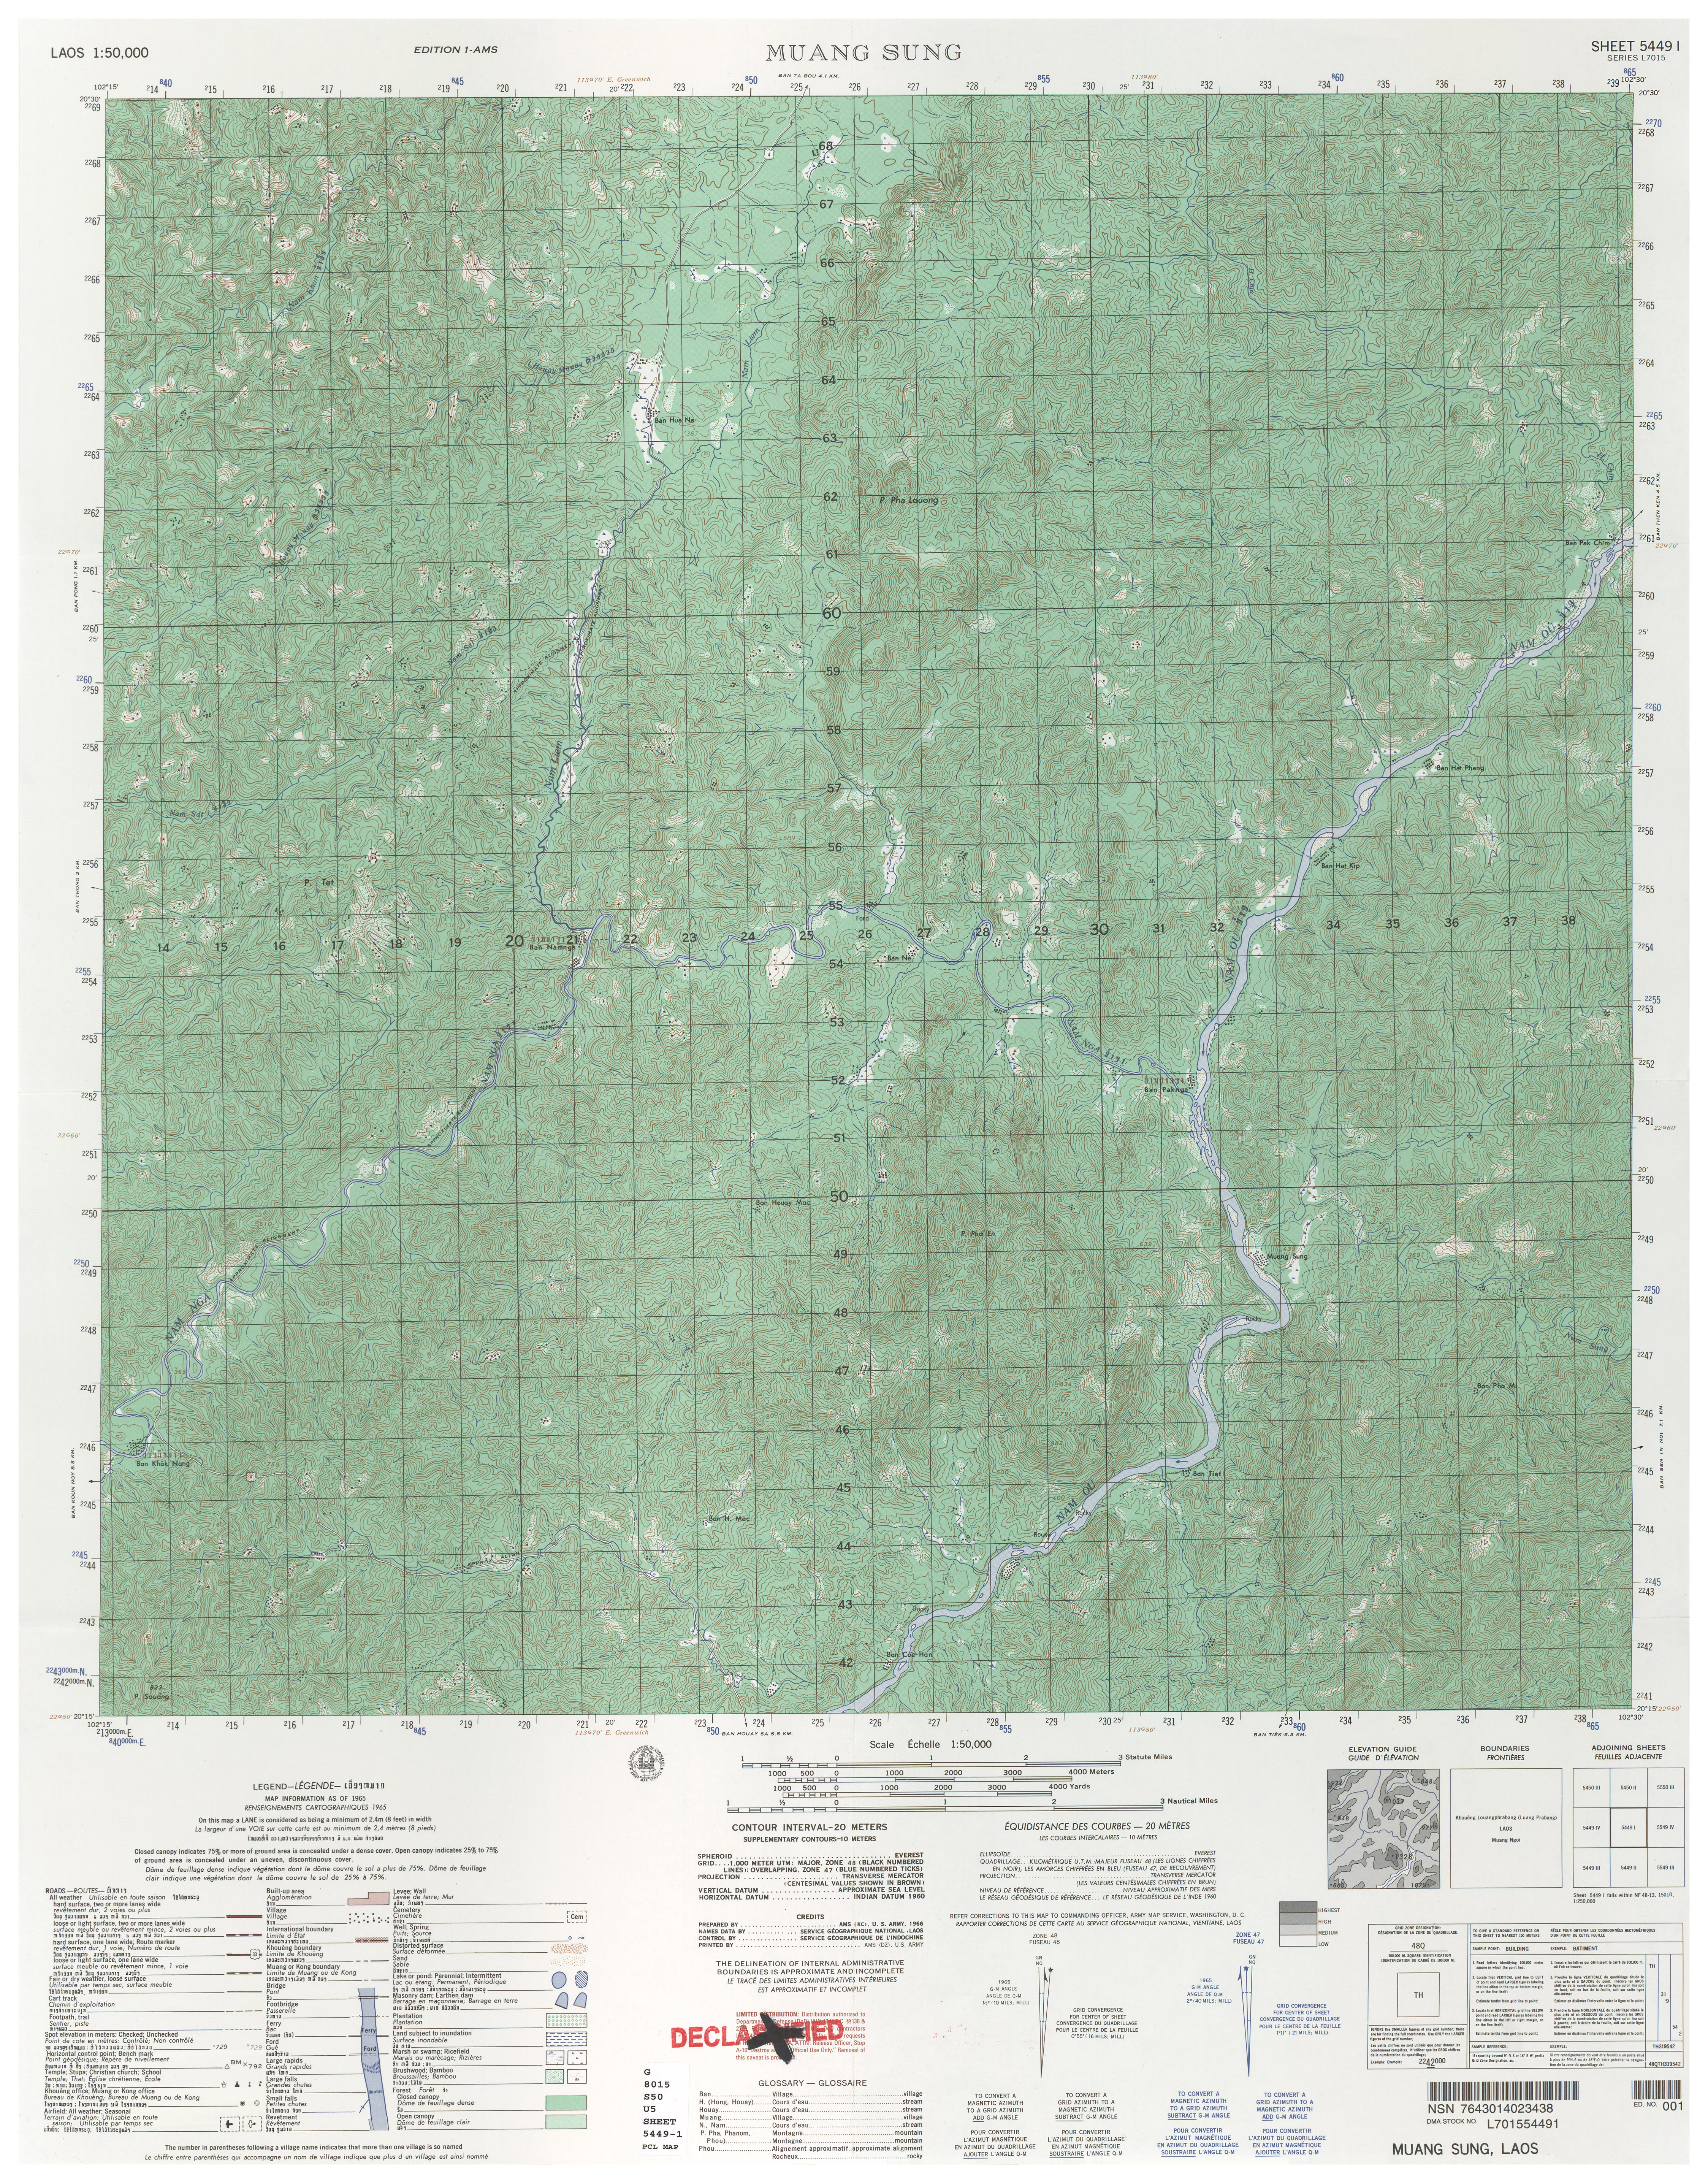 Laos Topographic Maps - Perry-Castañeda Map Collection - UT ... on interstate 30 map, interstate map of mississippi and alabama, interstate 85 map, lincoln way map, new jersey route 1 map, interstate highway map, interstate 526 map, interstate 75 map, interstate 70 map, interstate 27 map, us highway 78 map, interstate 80 map, interstate 25 map, interstate 10 map, interstate 422 map, interstate 26 map, interstate 44 map, interstate 74 map,